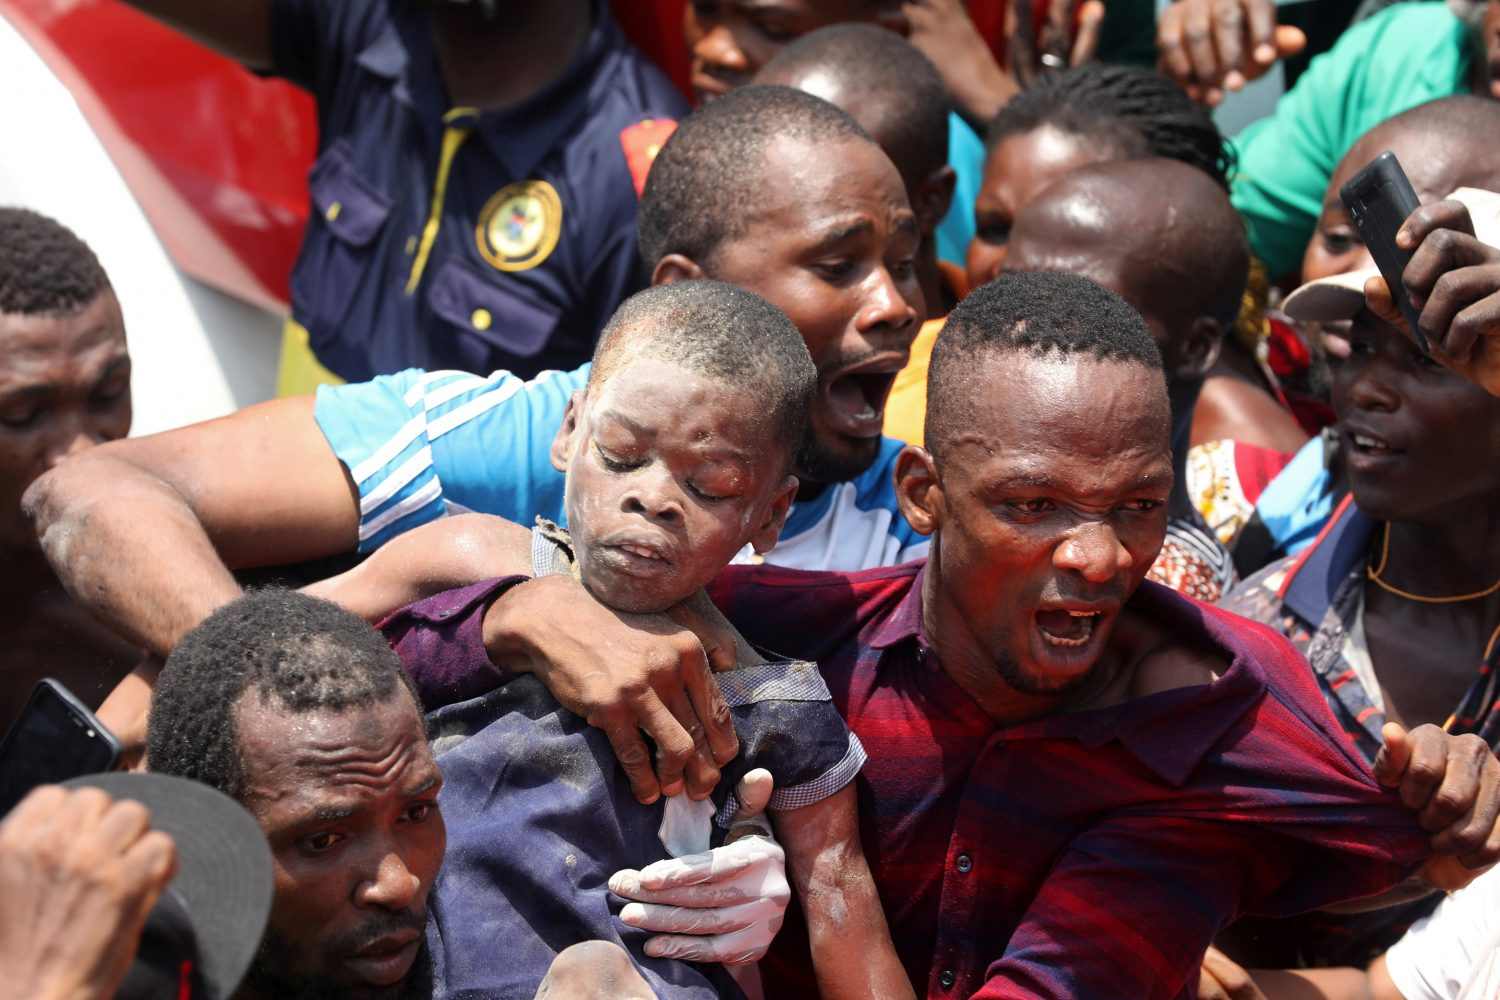 Men carry a boy who was rescued at the site of a collapsed building containing a school in Nigeria's commercial capital of Lagos, Nigeria March 13, 2019. REUTERS/Temilade Adelaja